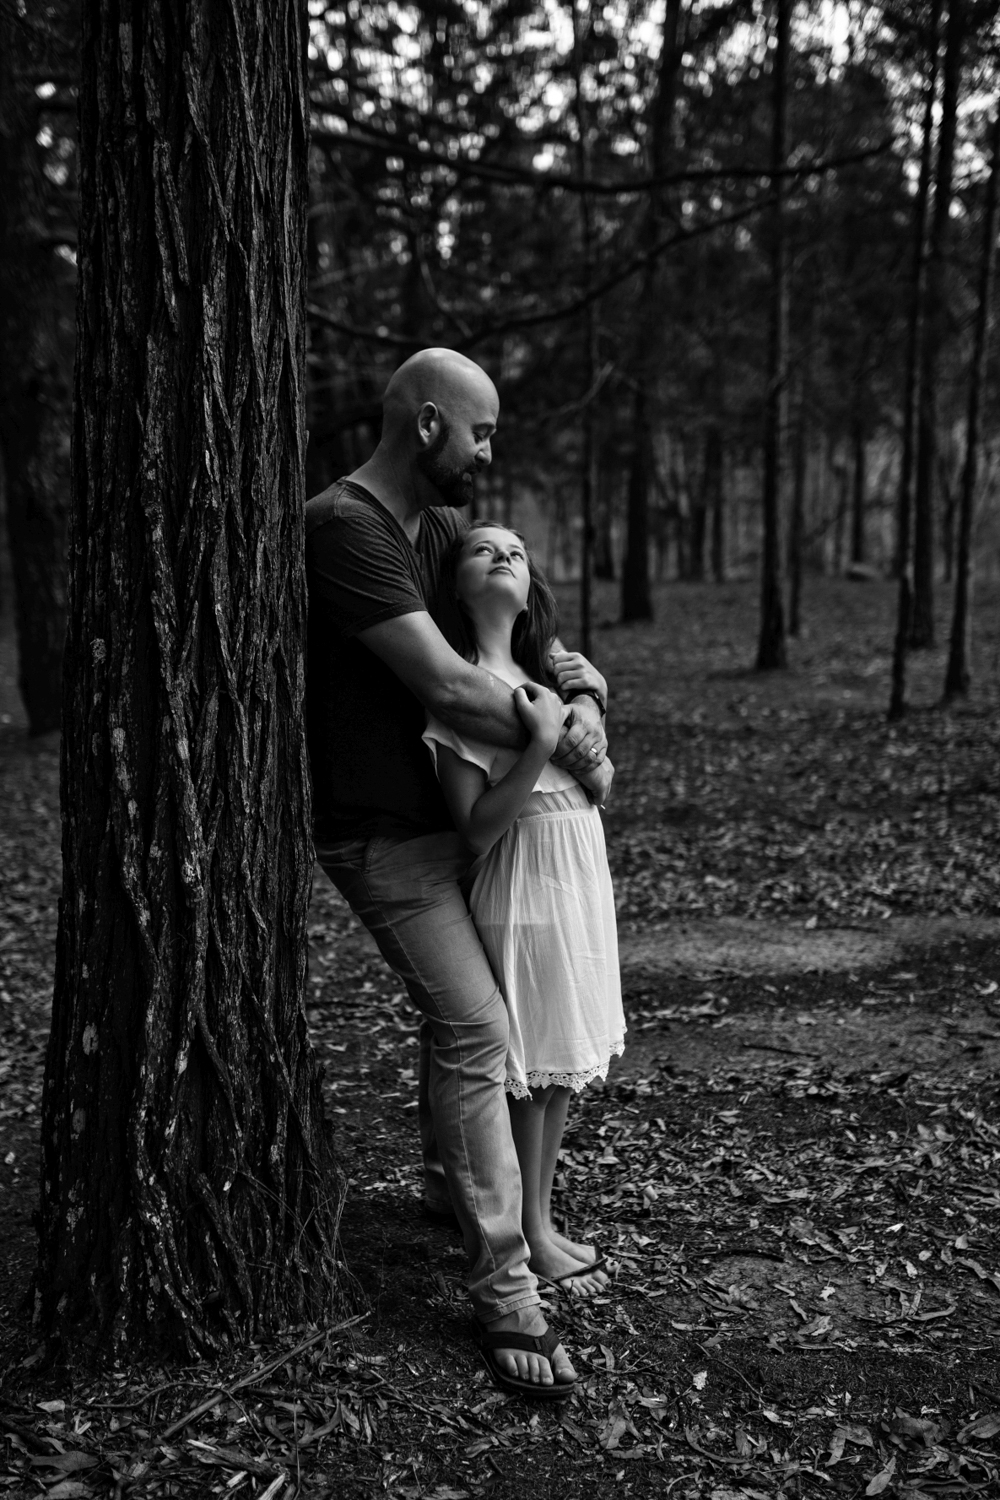 Daughter and father embrace during documentary family photo session.